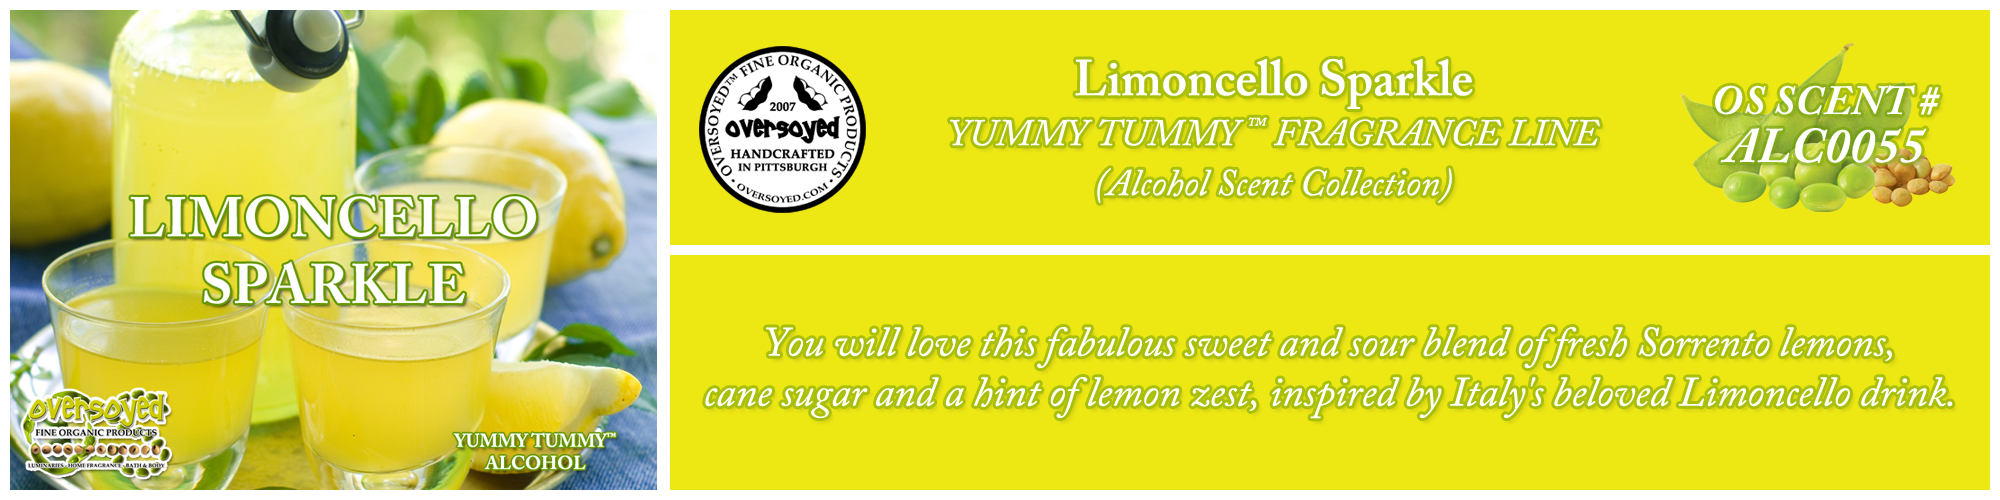 Limoncello Sparkle Handcrafted Products Collection